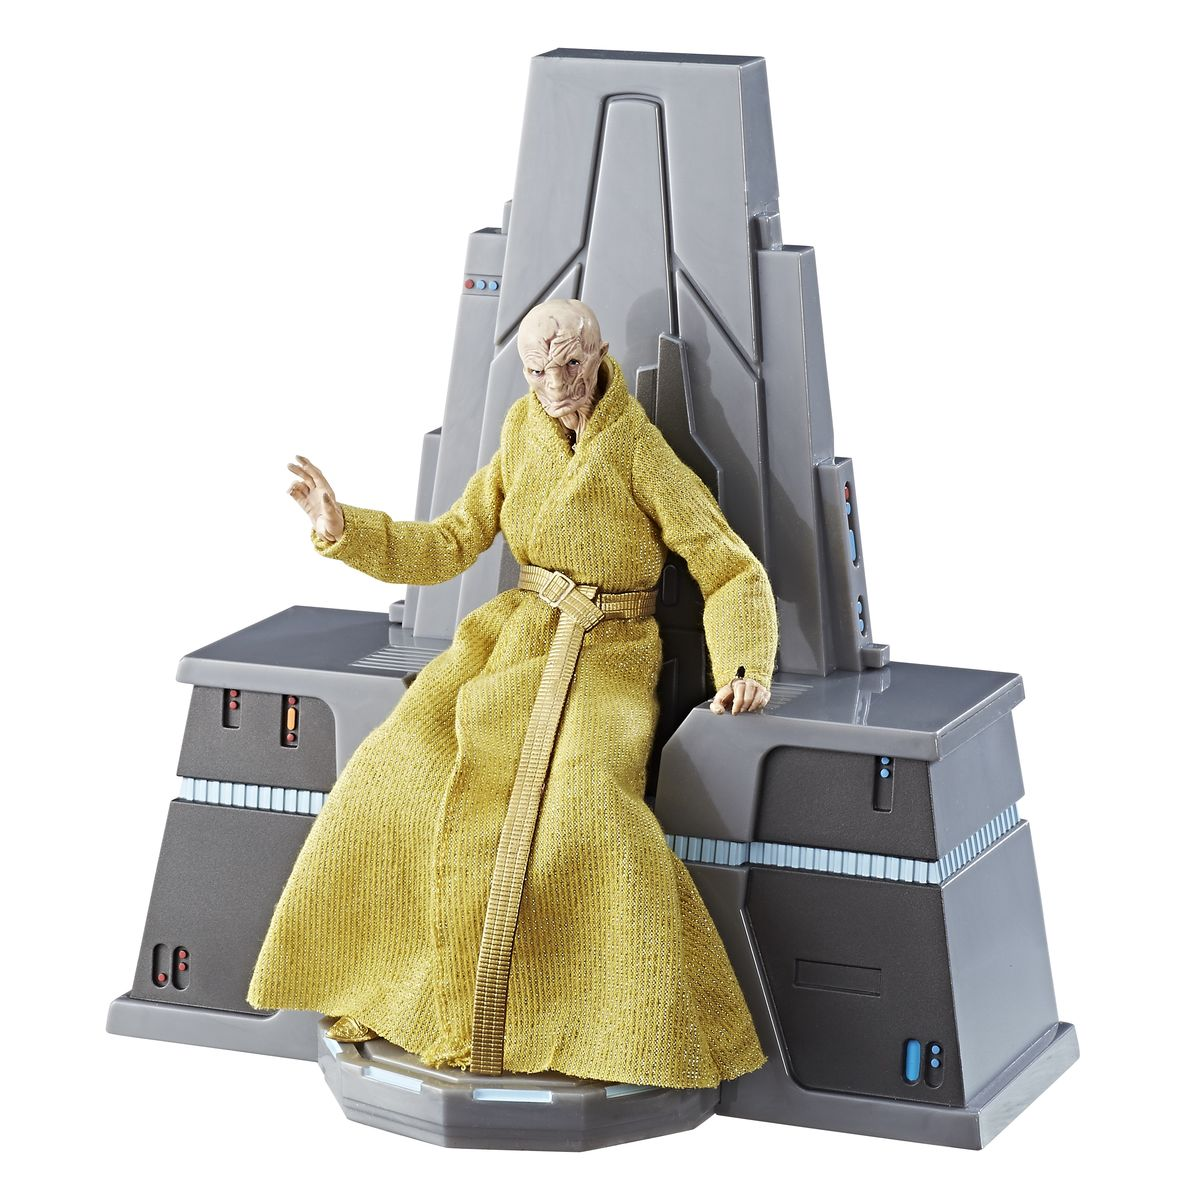 STAR WARS THE BLACK SERIES 6-INCH SUPREME LEADER SNOKE FIGURE & THRONE.jpeg